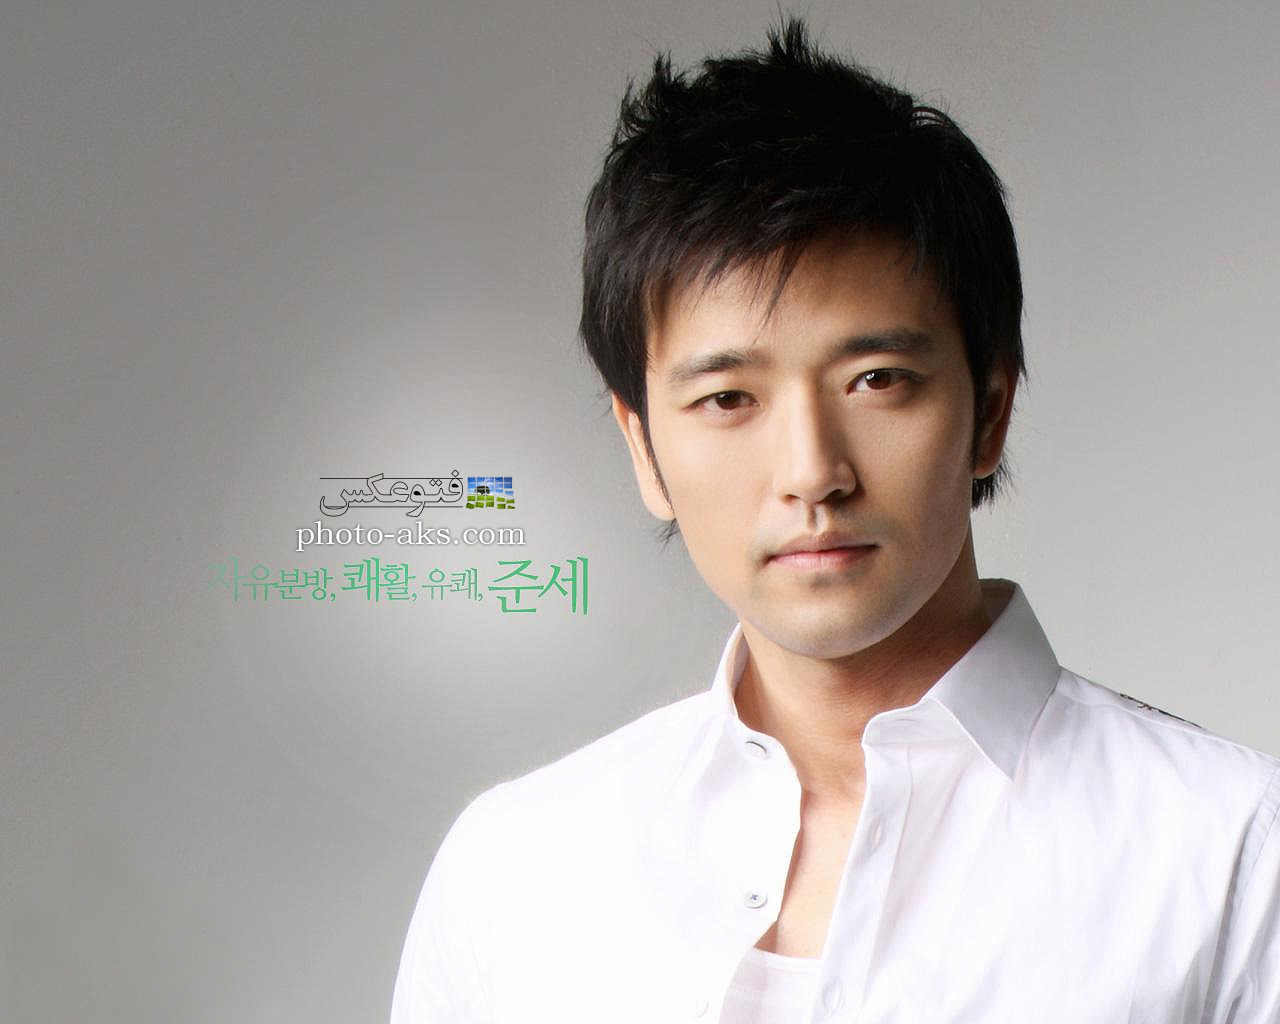 http://pic.photo-aks.com/photo/actor/korean/large/Bae_Soo_Bin_wallpaper.jpg